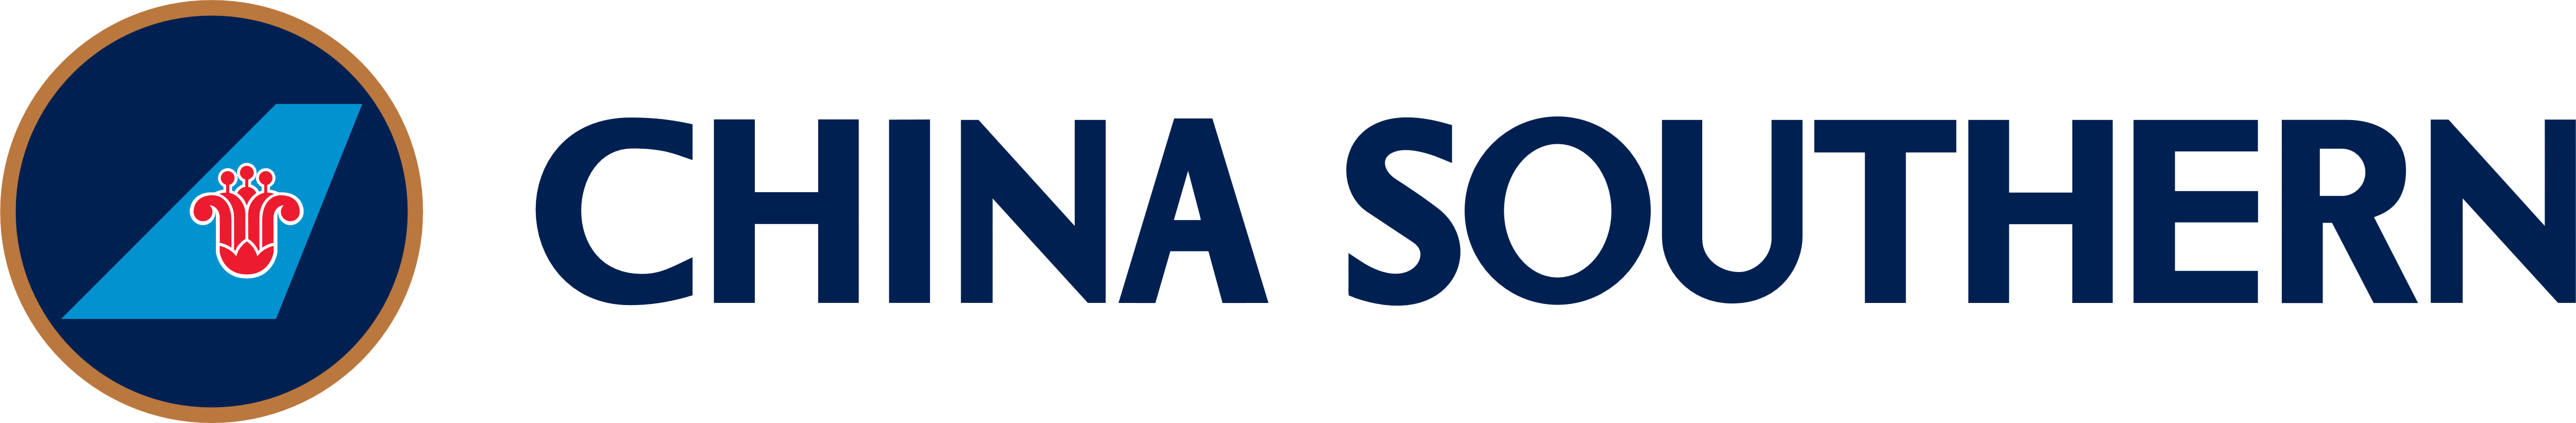 China Southern Airlines Logo PNG - 114071